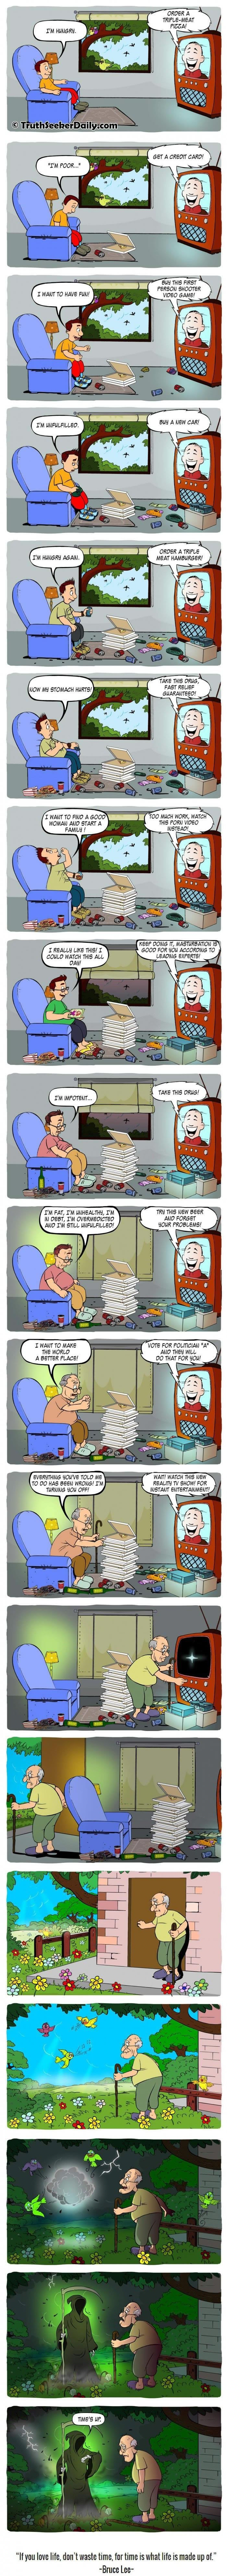 funny-web-comics-some-key-advice-for-dealing-with-life